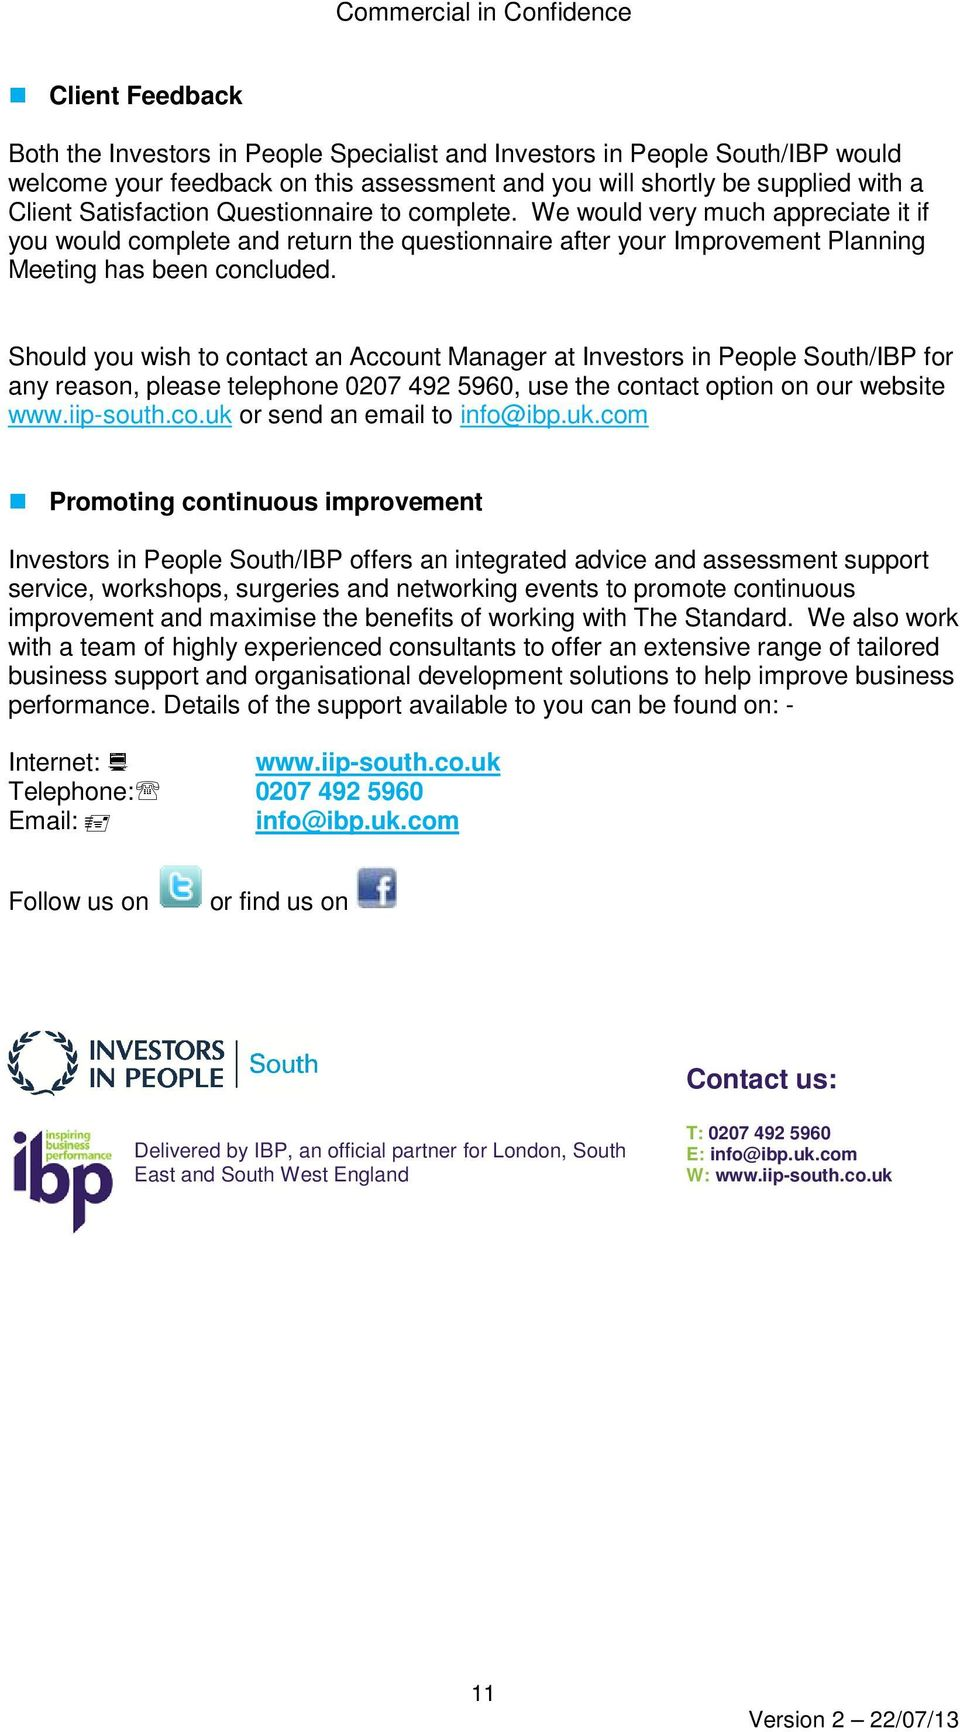 Should you wish to contact an Account Manager at Investors in People South/IBP for any reason, please telephone 0207 492 5960, use the contact option on our website www.iip-south.co.uk or send an email to info@ibp.